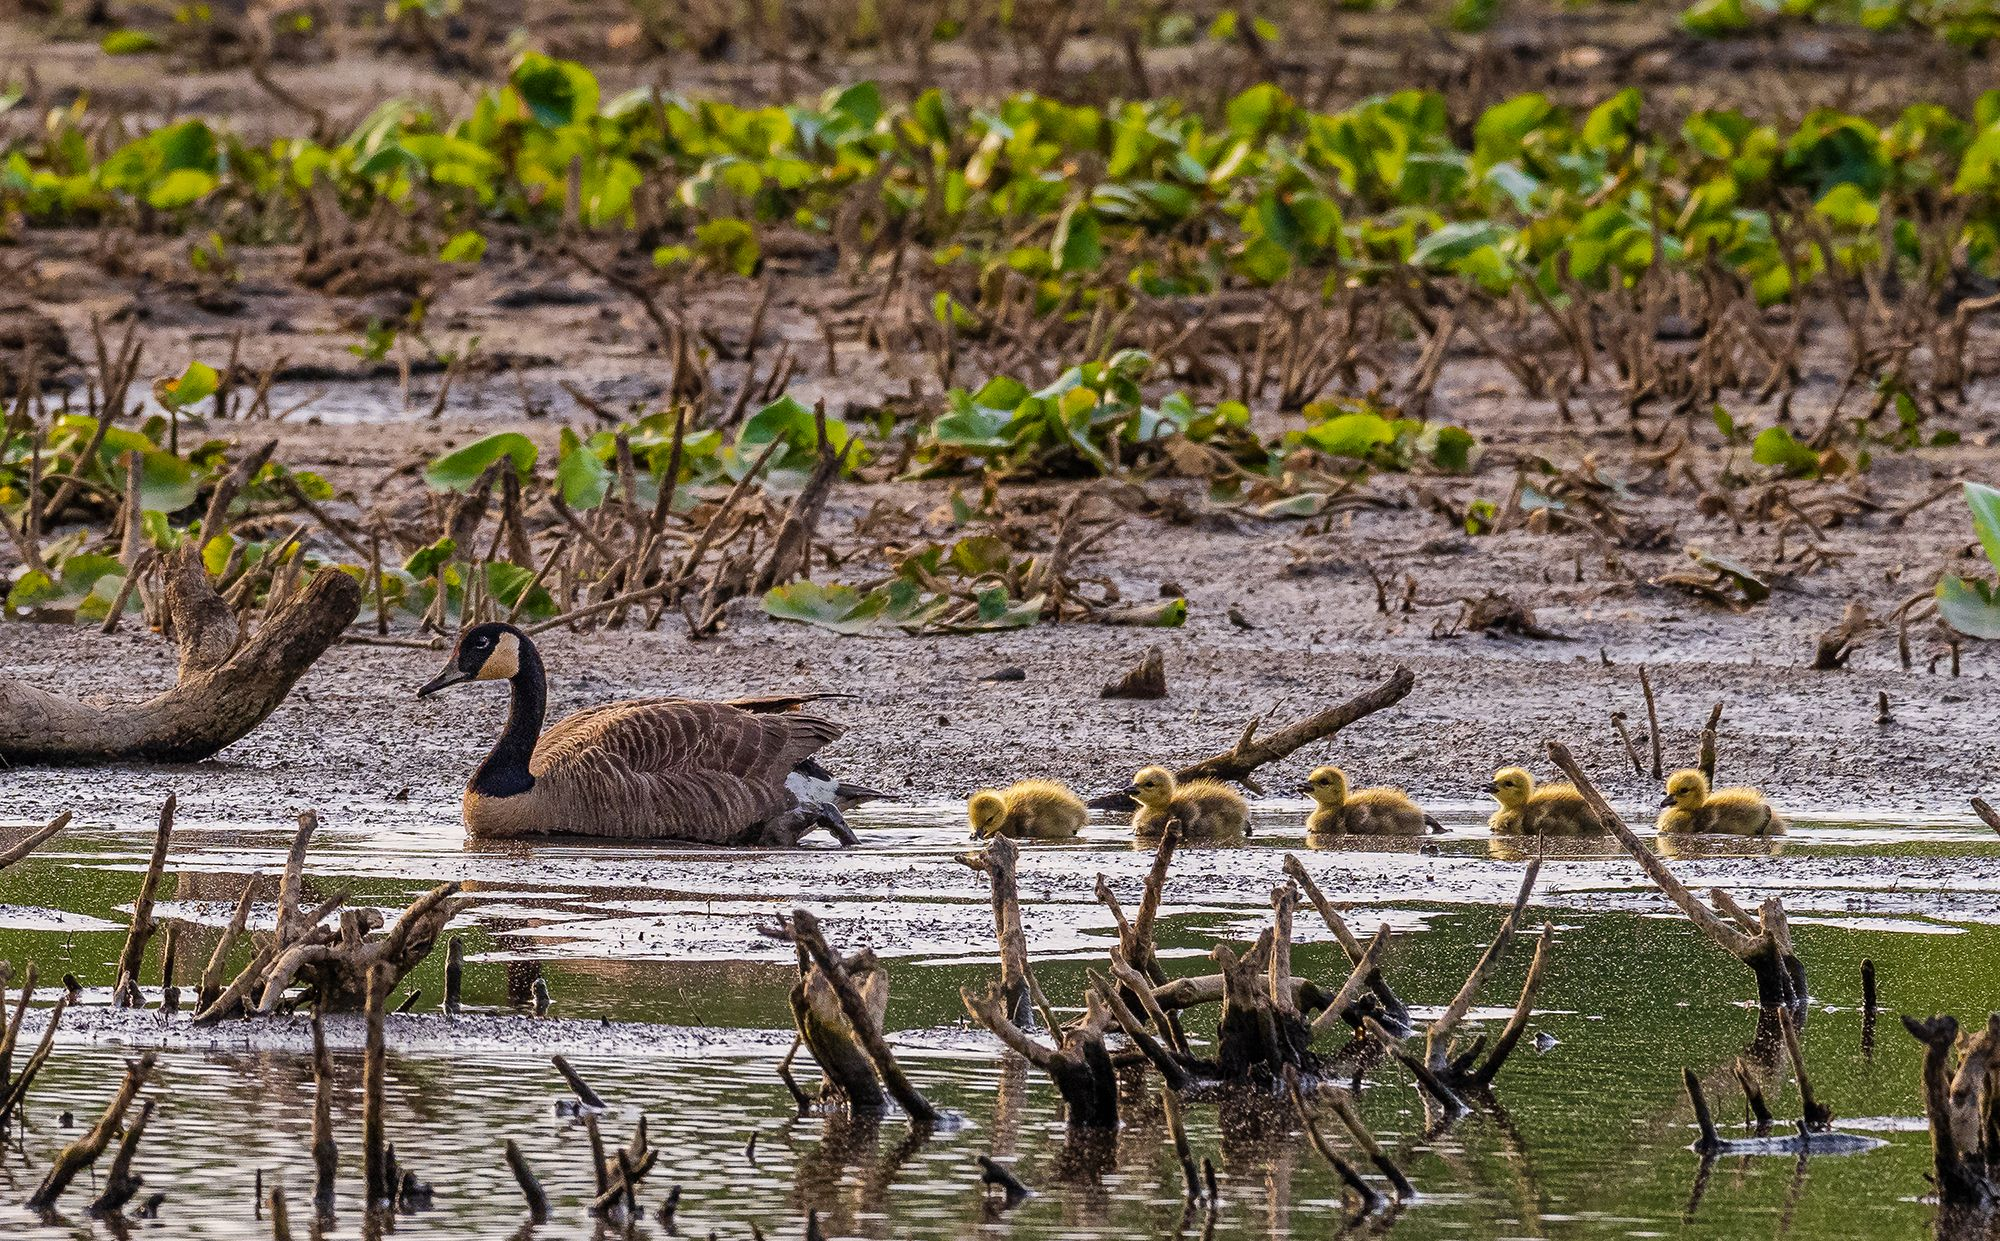 Five small yellow goslings float in a line behind an adult Canada goose. The adult bird has a thin curving black neck and white throat. Green vegetation grows in the mud flats in the background.